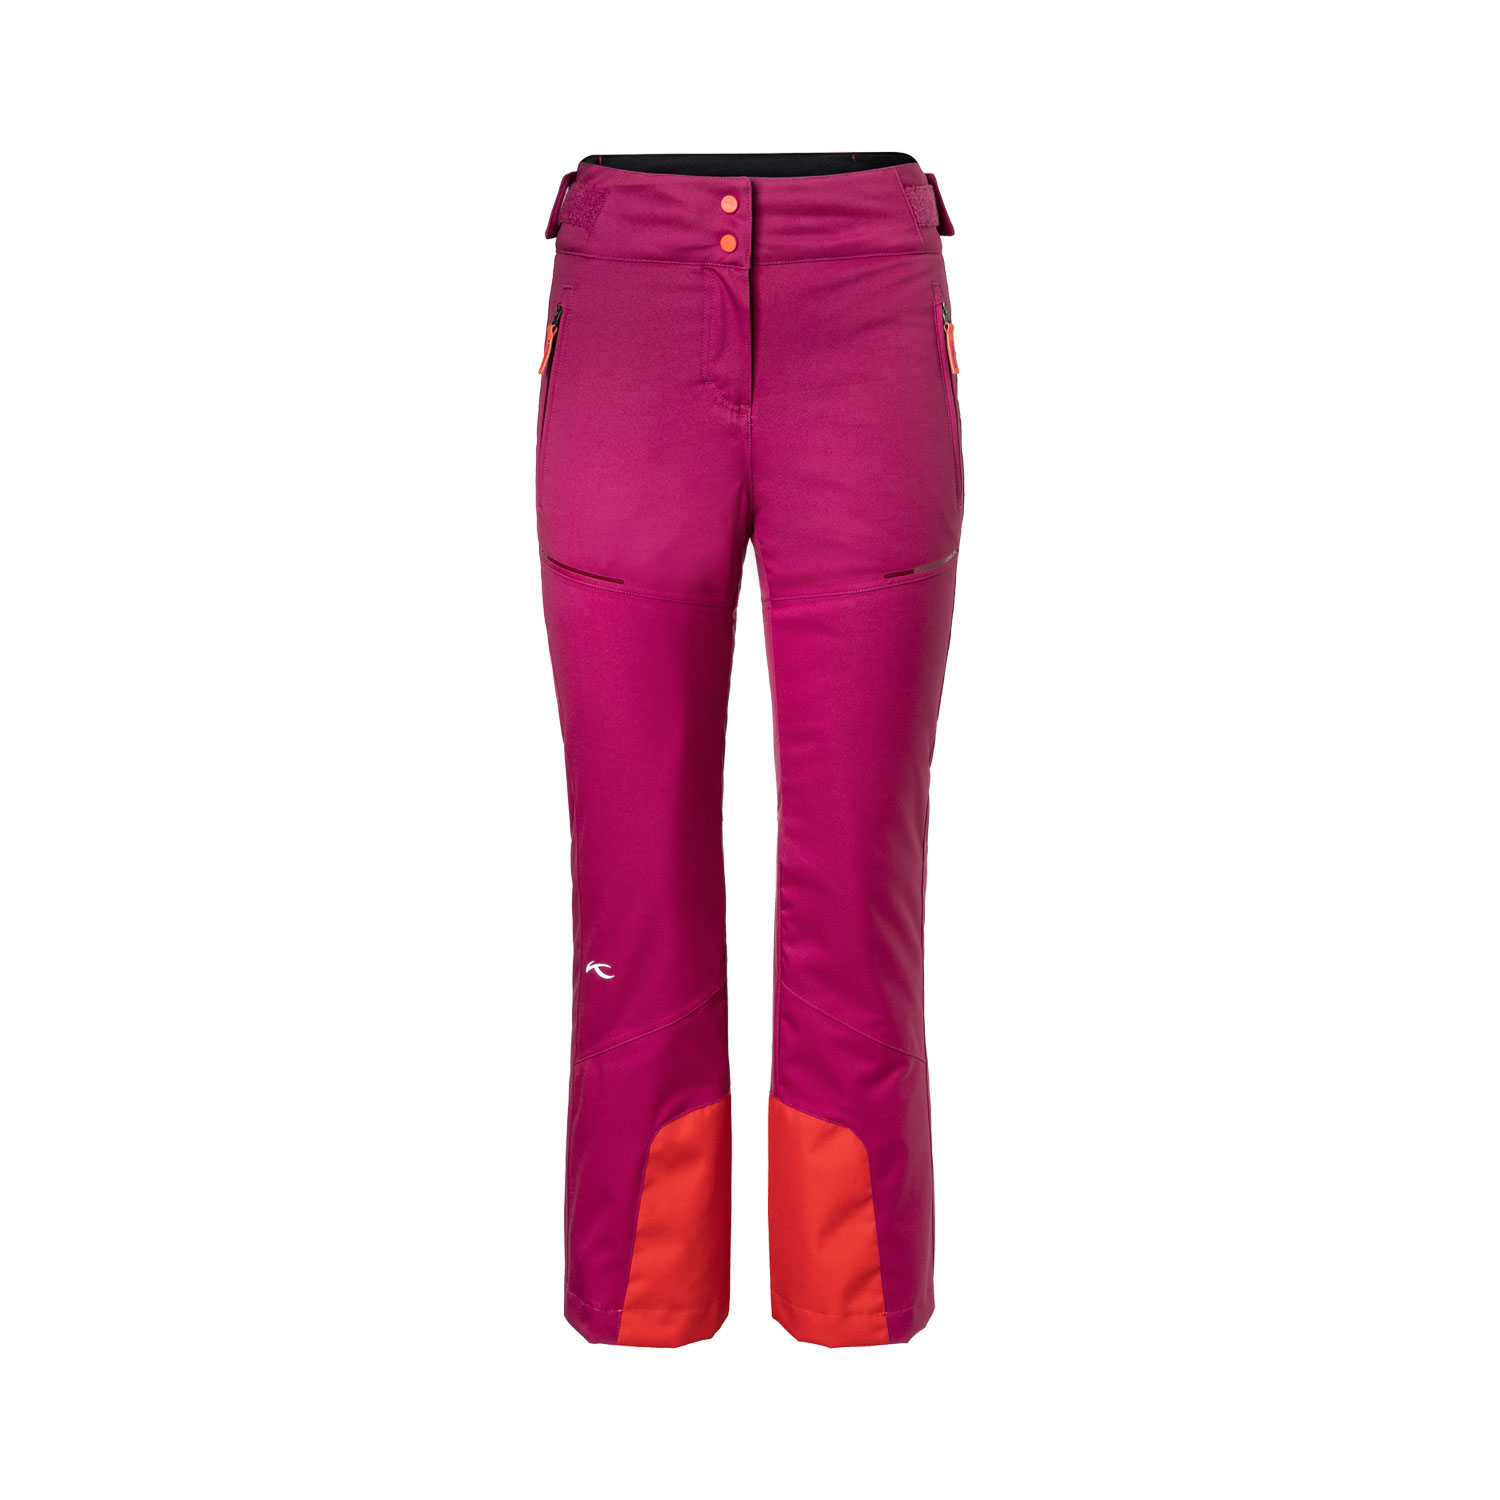 Kjus Girls Carpa Kinder Skihose